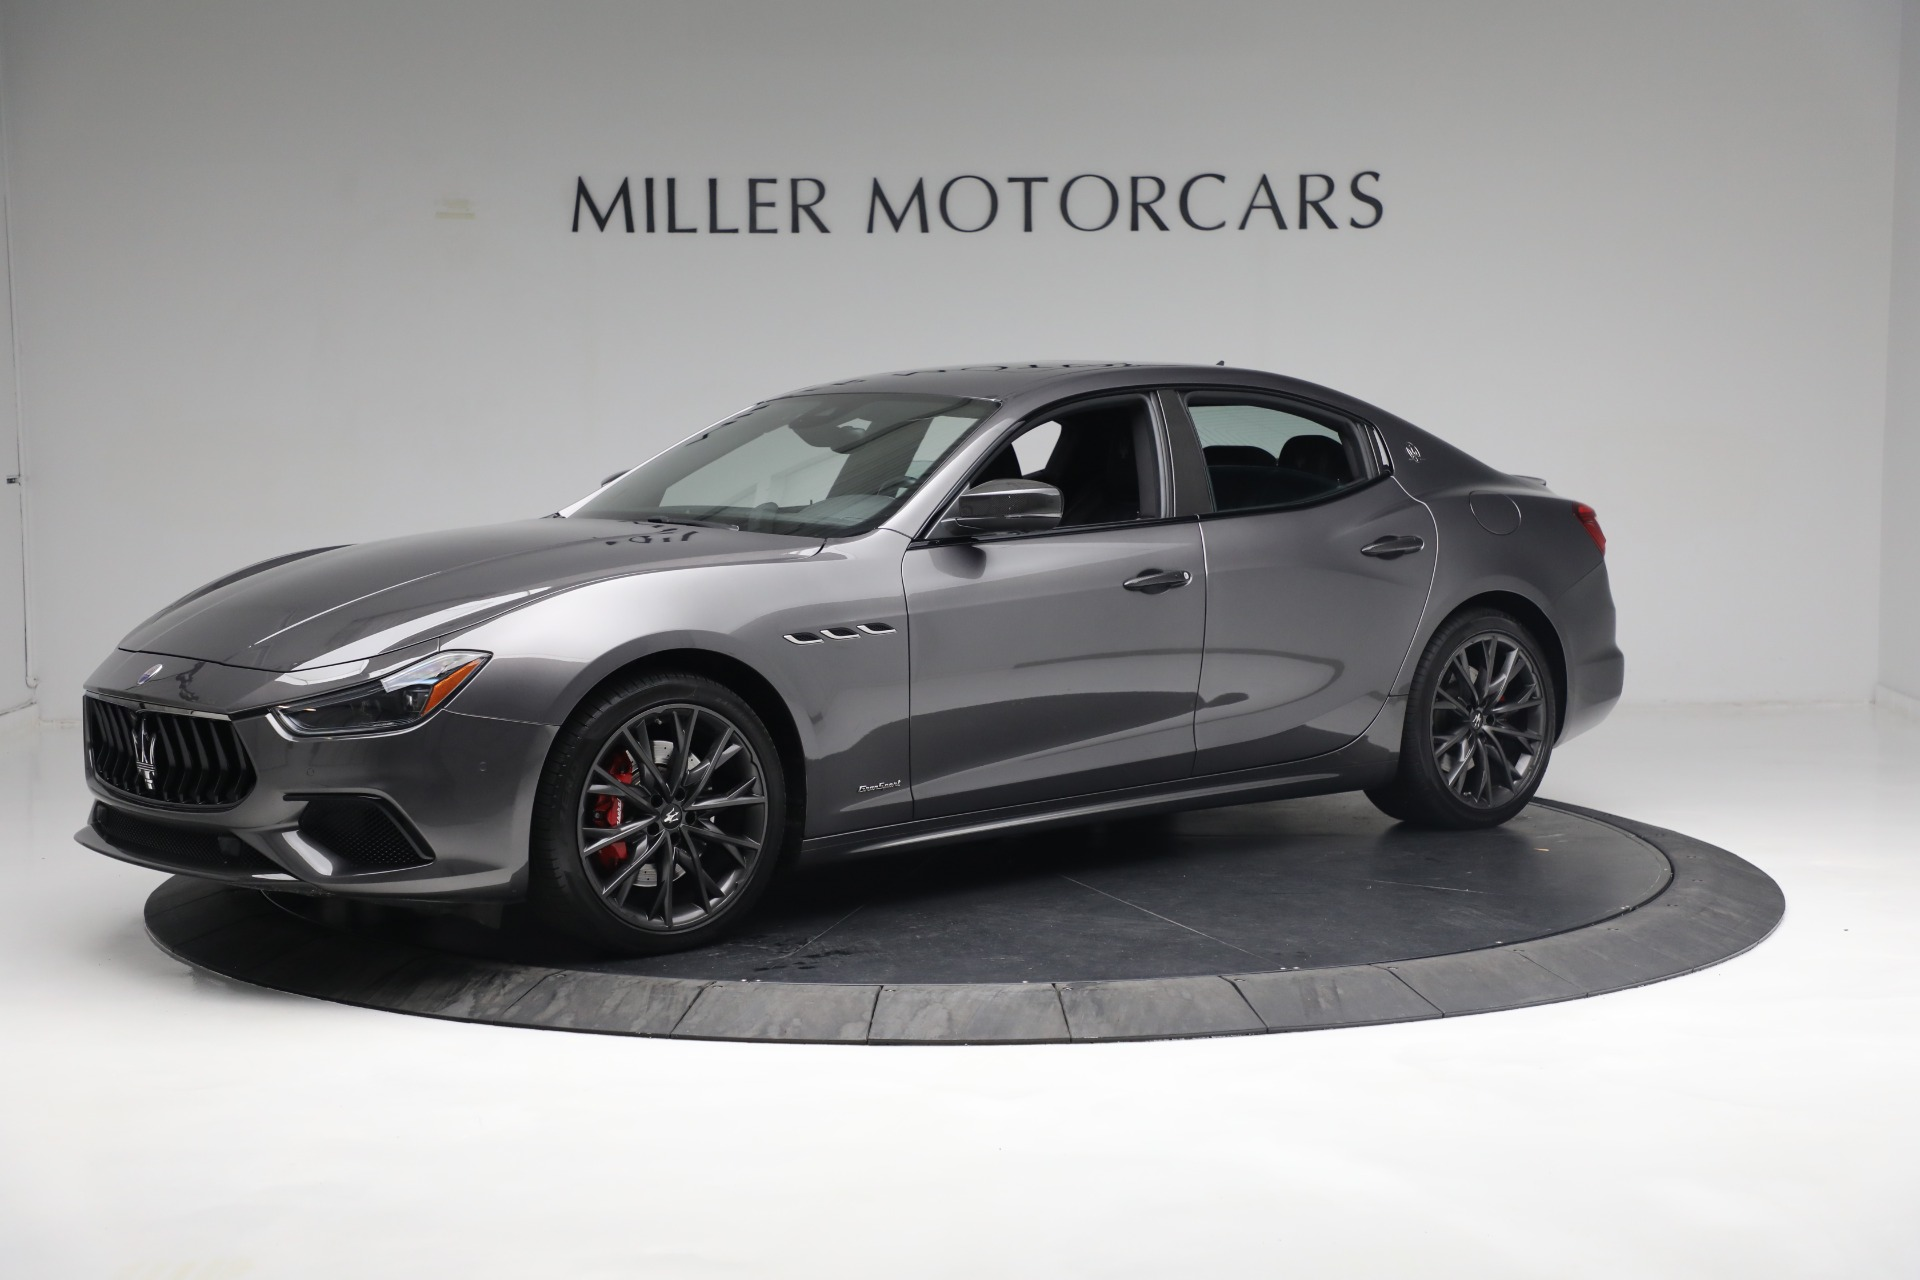 New 2019 Maserati Ghibli S Q4 GranSport For Sale In Westport, CT 2927_p2